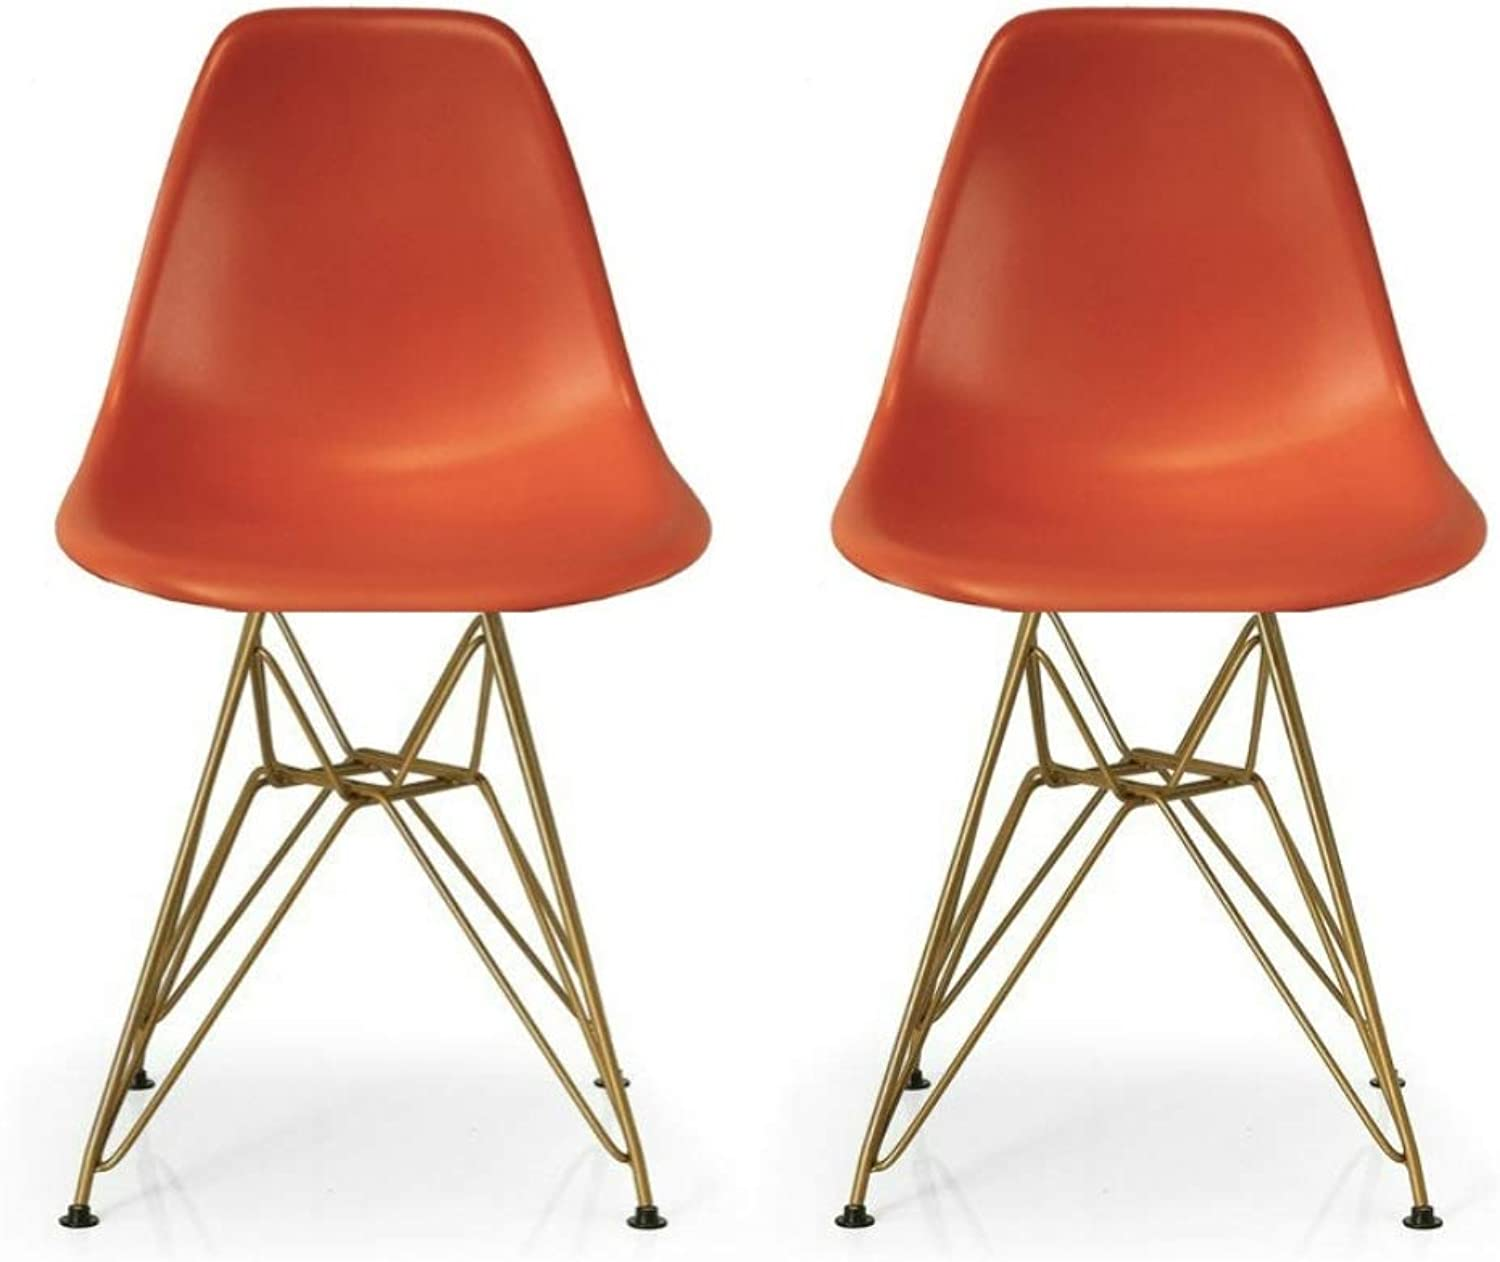 silver Import Eames Style Side Dining Chair with gold Legs Eiffel Dining Room Chair in orange Set of 2